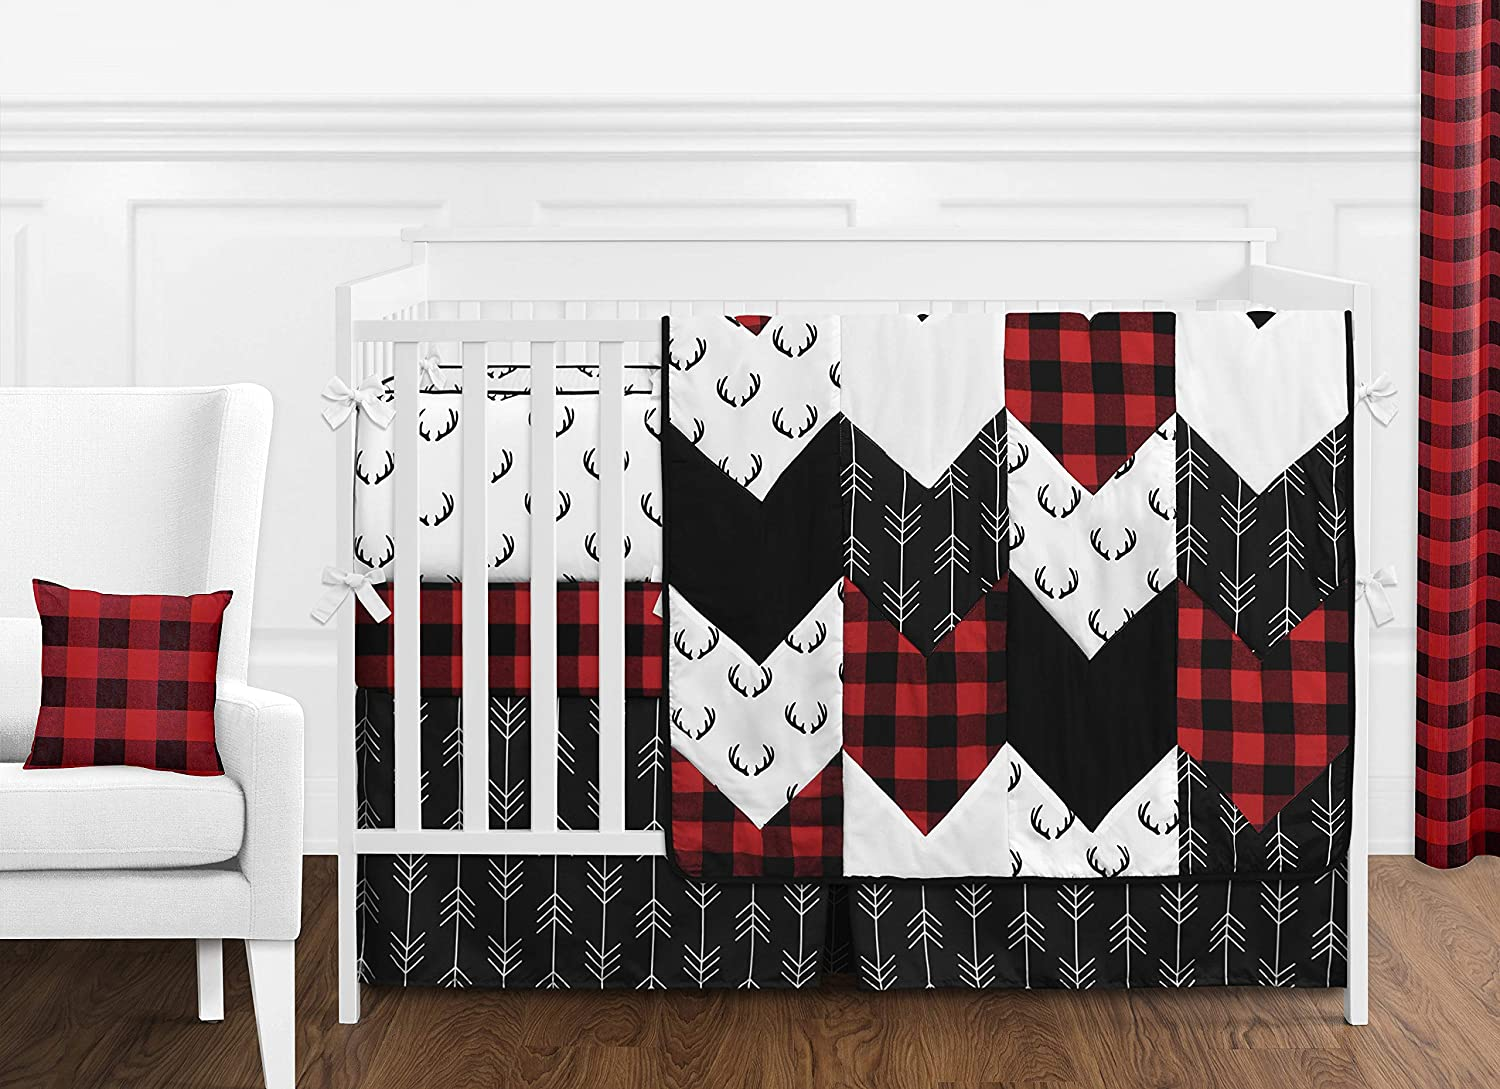 Sweet Jojo Designs Woodland Buffalo Plaid Baby Boy Nursery Crib Bedding Set with Bumper - 9 Pieces - Red and Black Rustic Country Deer Lumberjack Arrow